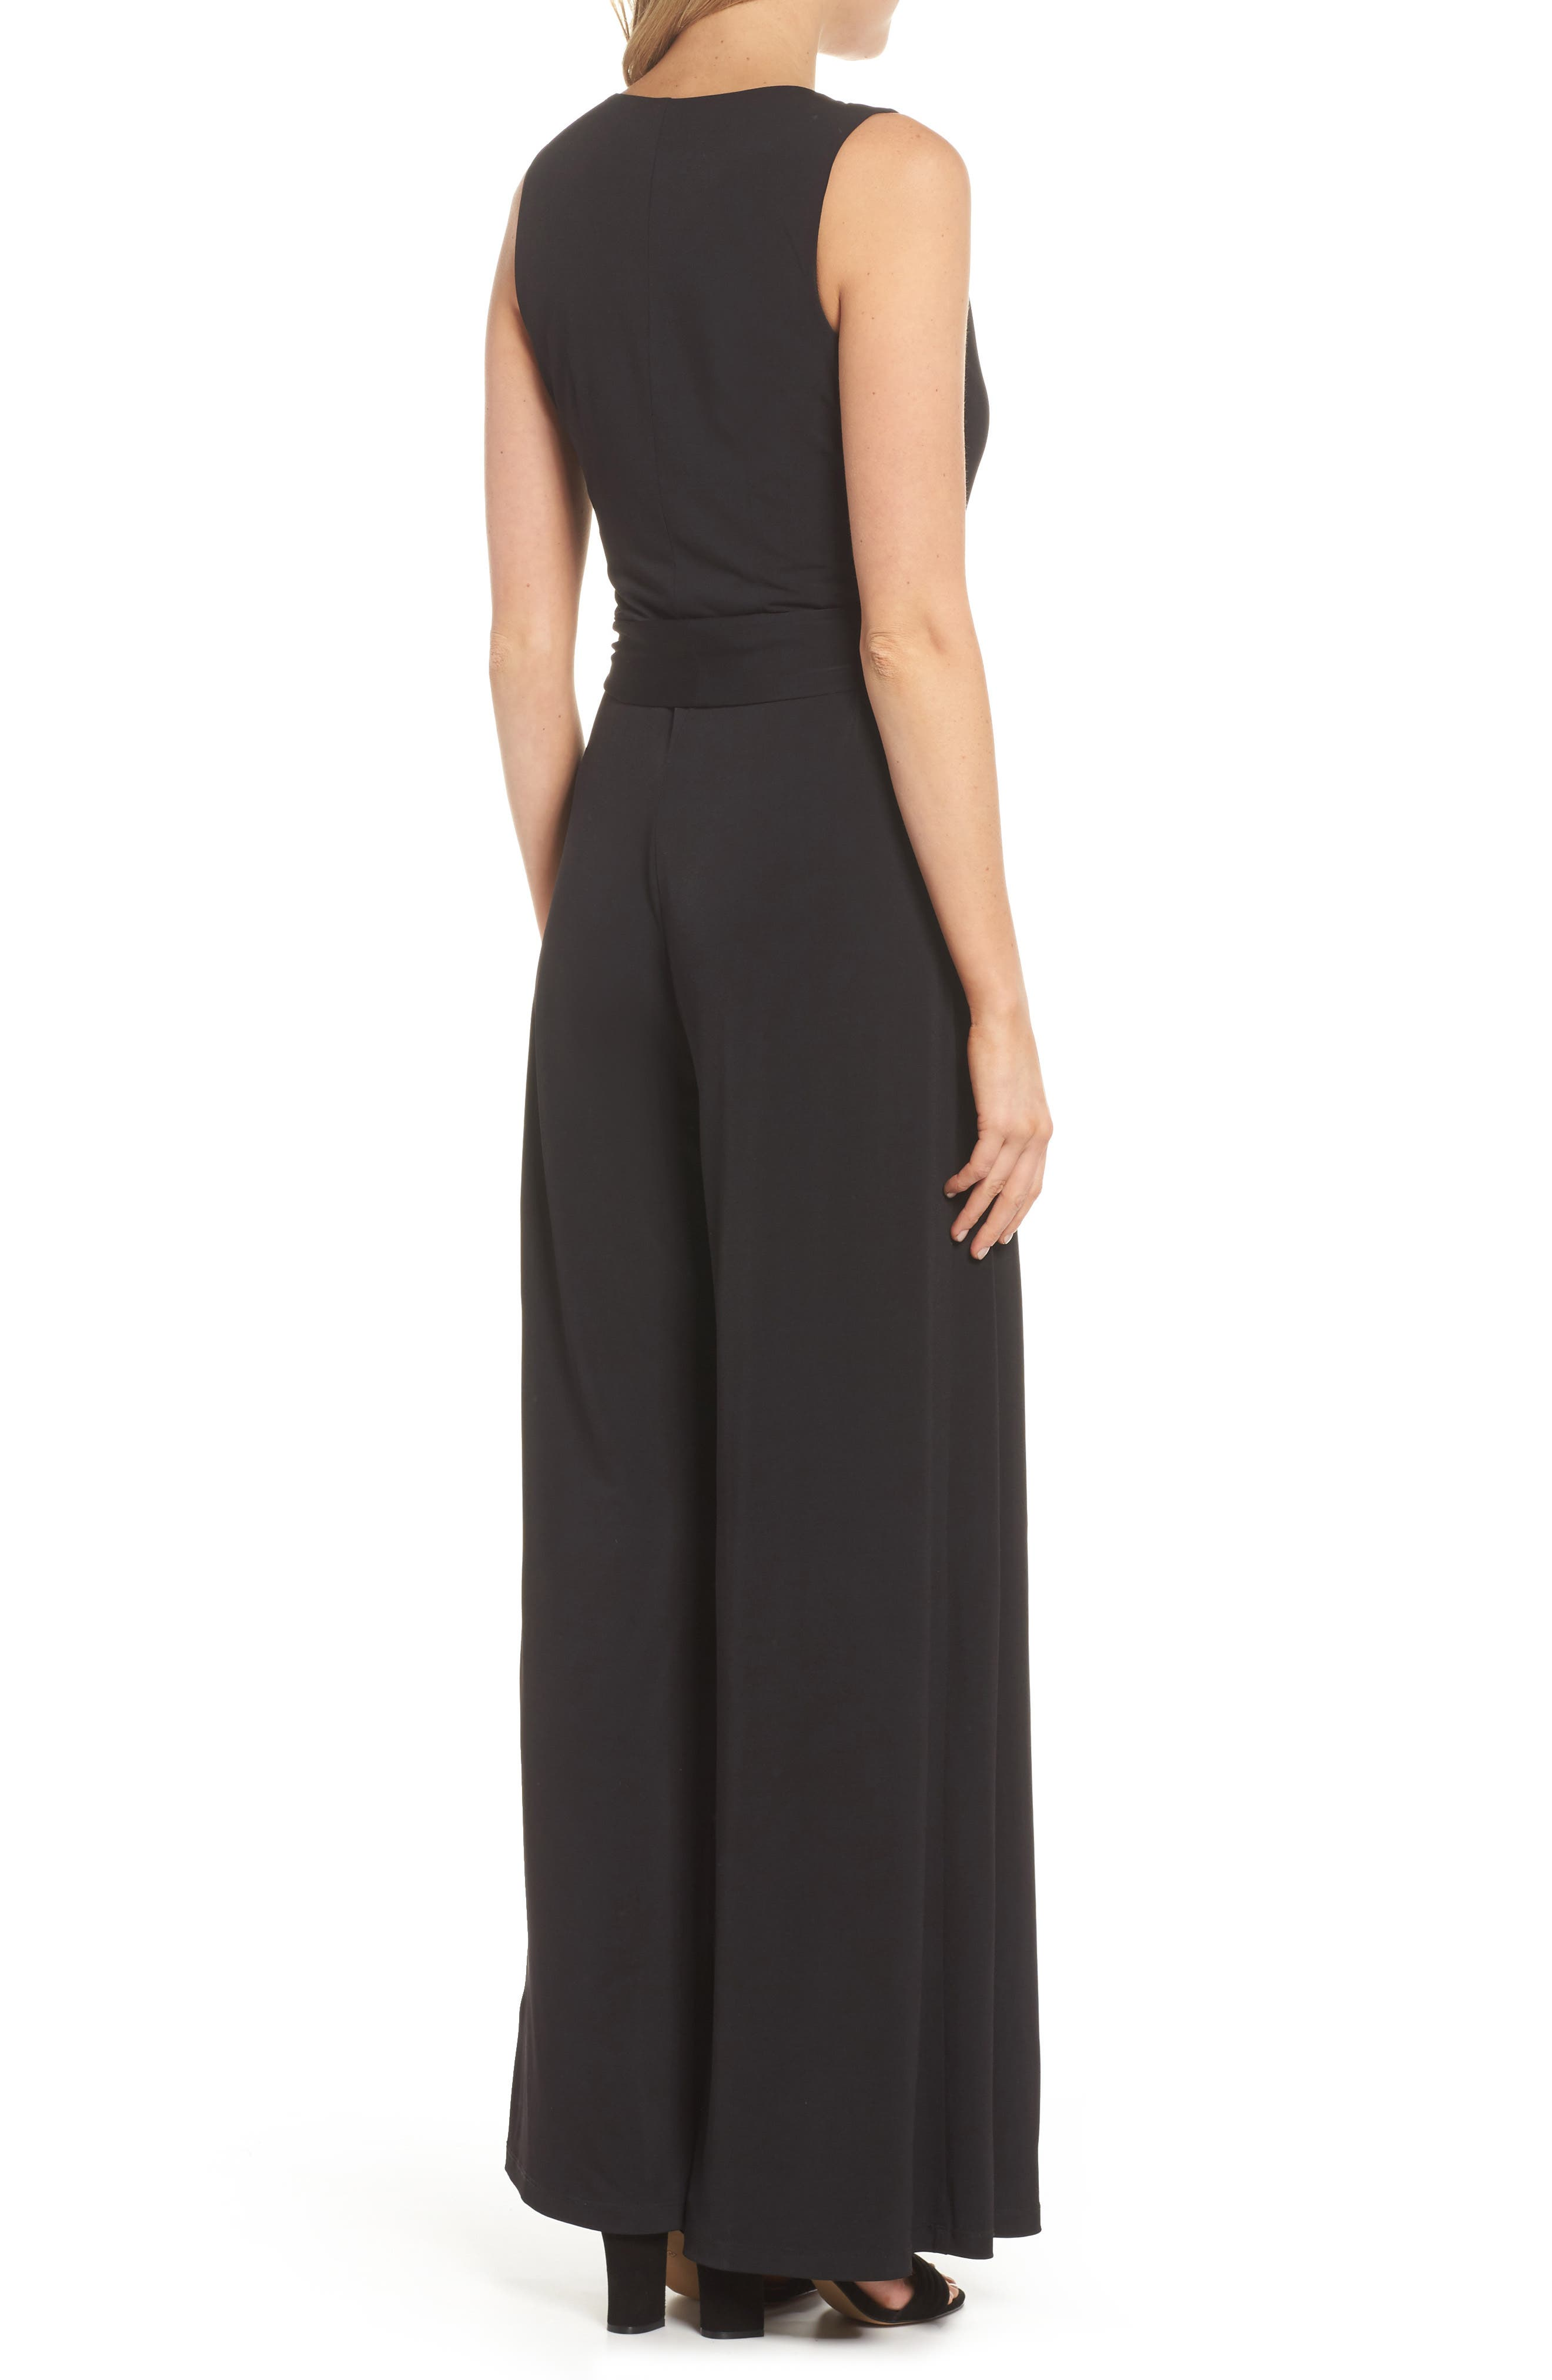 ELIZA J, Faux Wrap Wide Leg Jumpsuit, Alternate thumbnail 2, color, BLACK